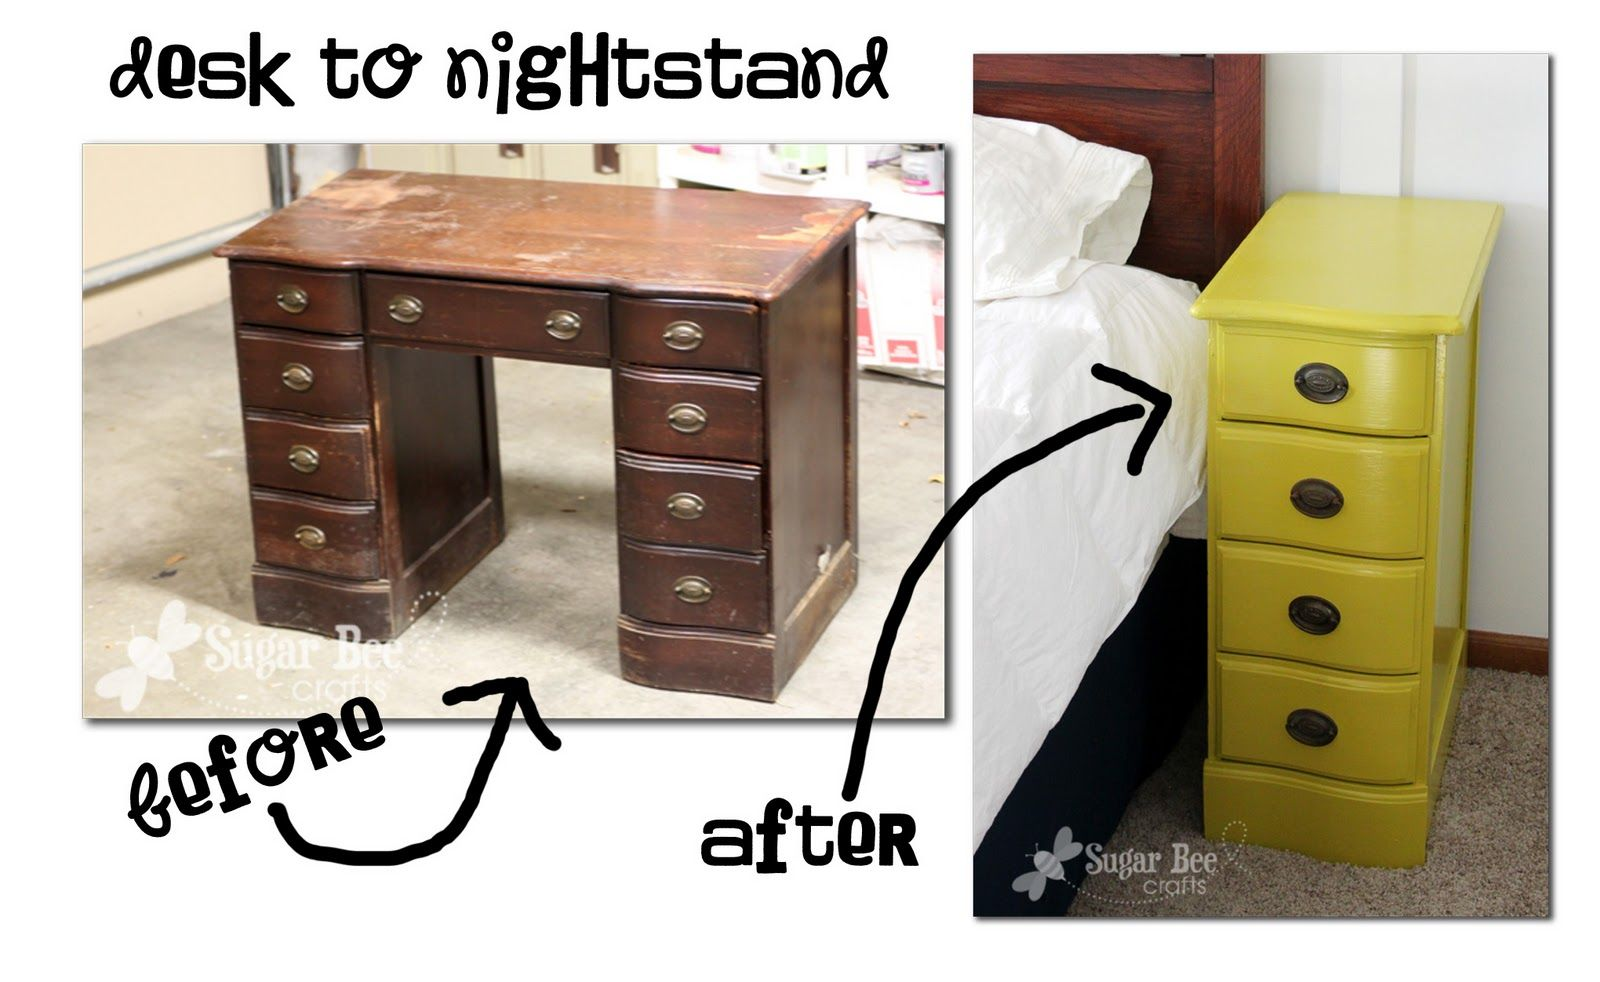 Ideas : Make two night stands from a desk.   Sugar Bee Crafts: sewing, recipes, crafts, photo tips, and more!: Nightstands - from a desk!